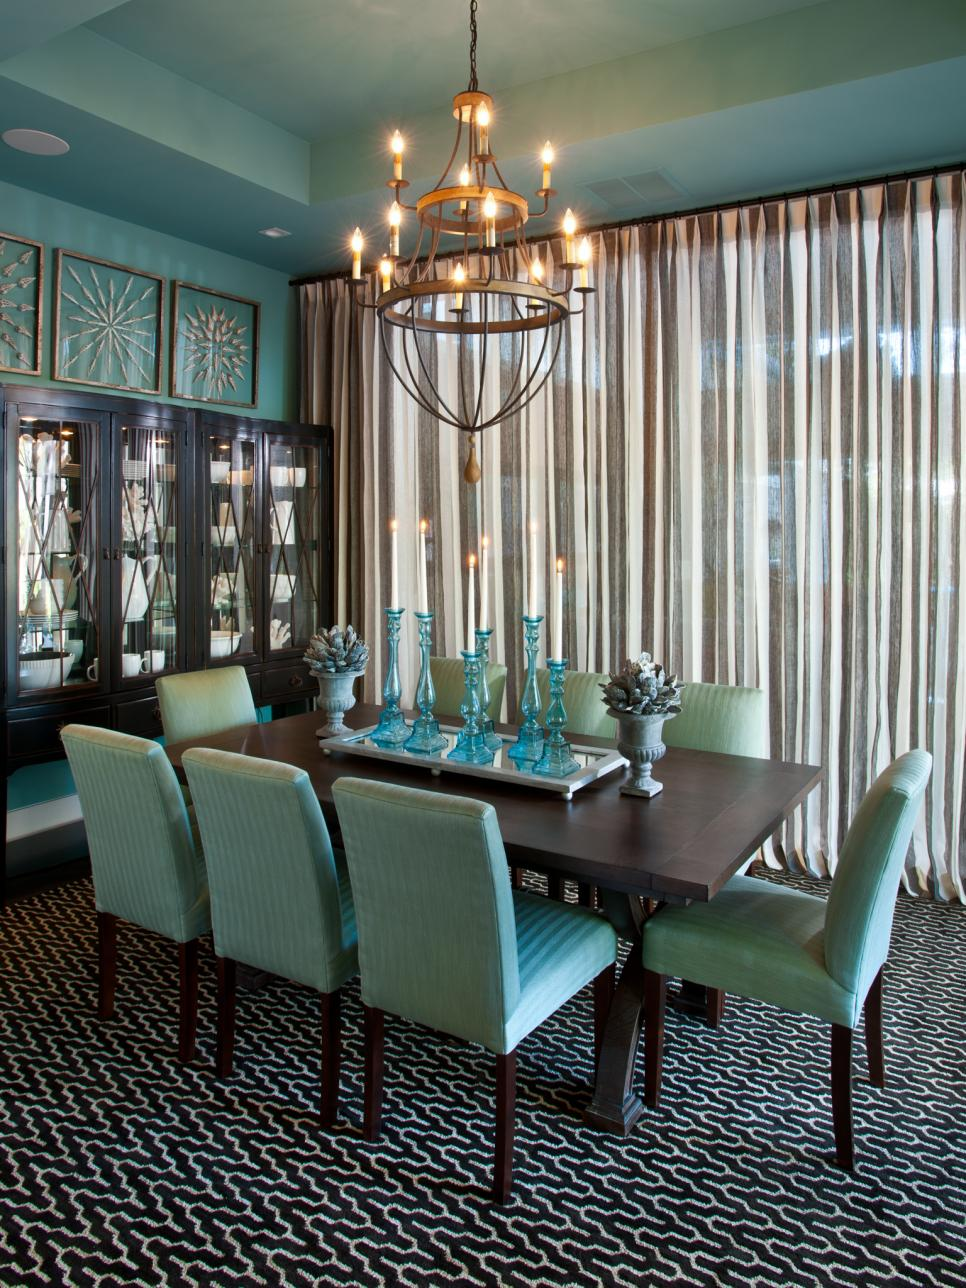 HGTV Smart Home 2013 Coastal Dining Room 13 Photos